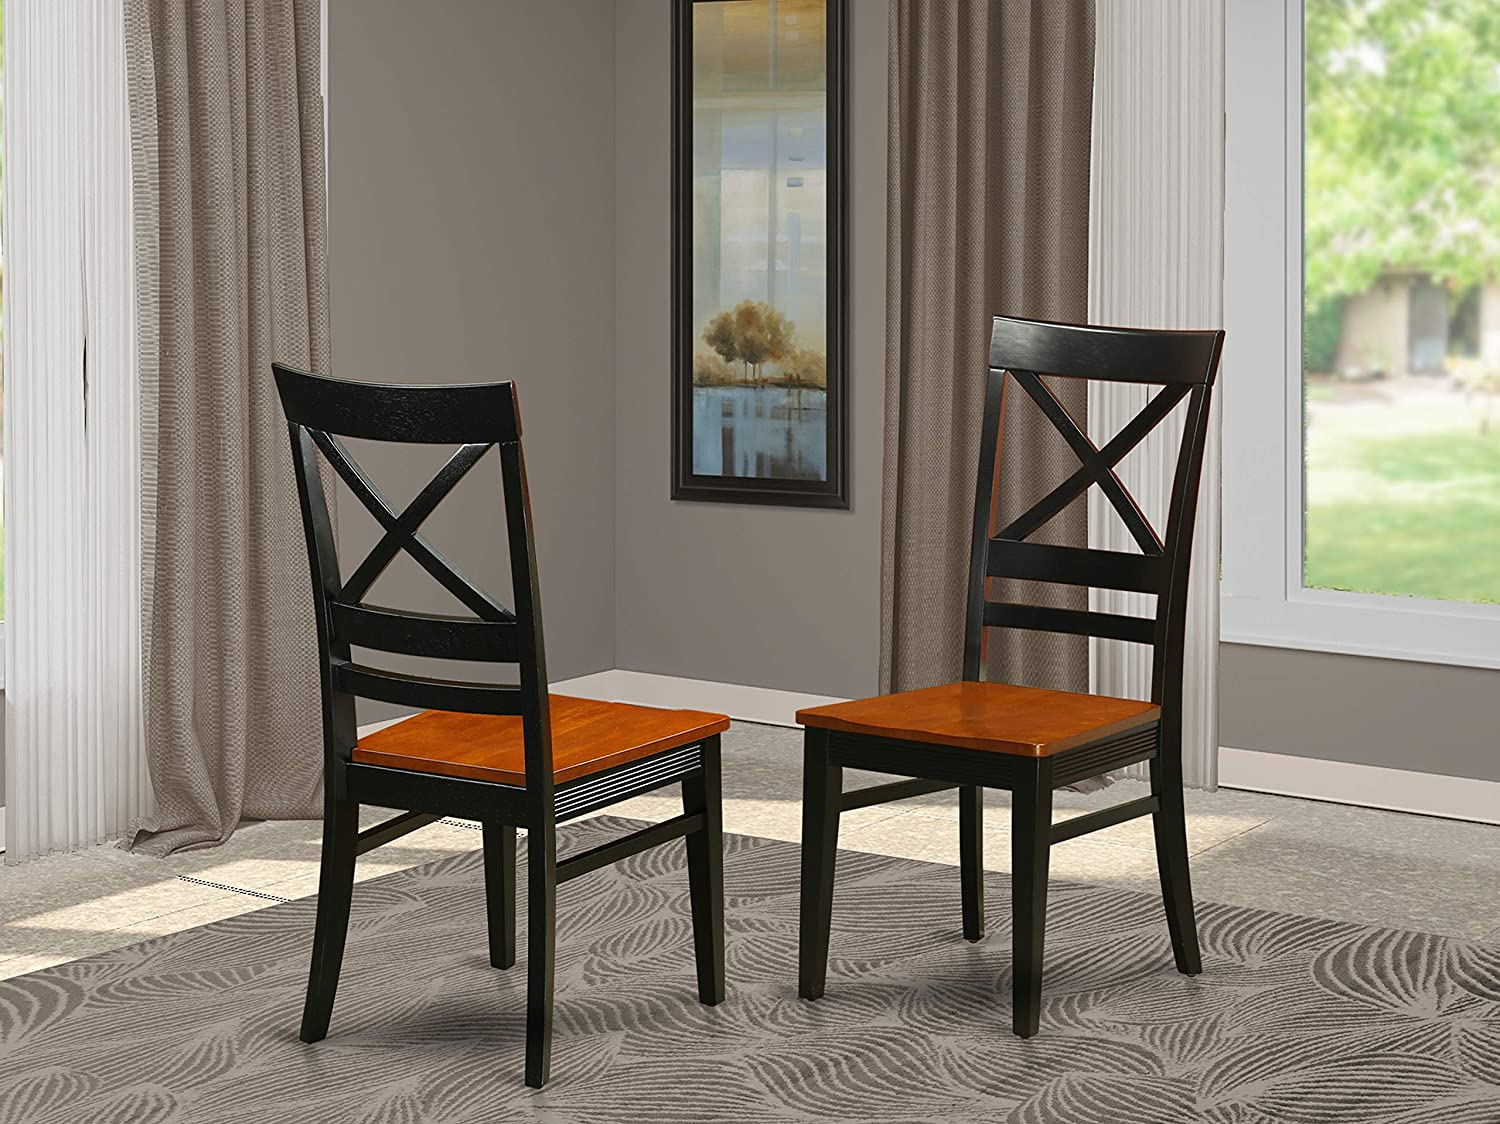 Quincy Dining Dining room Chair With X-Back in Black & Cherry Finish